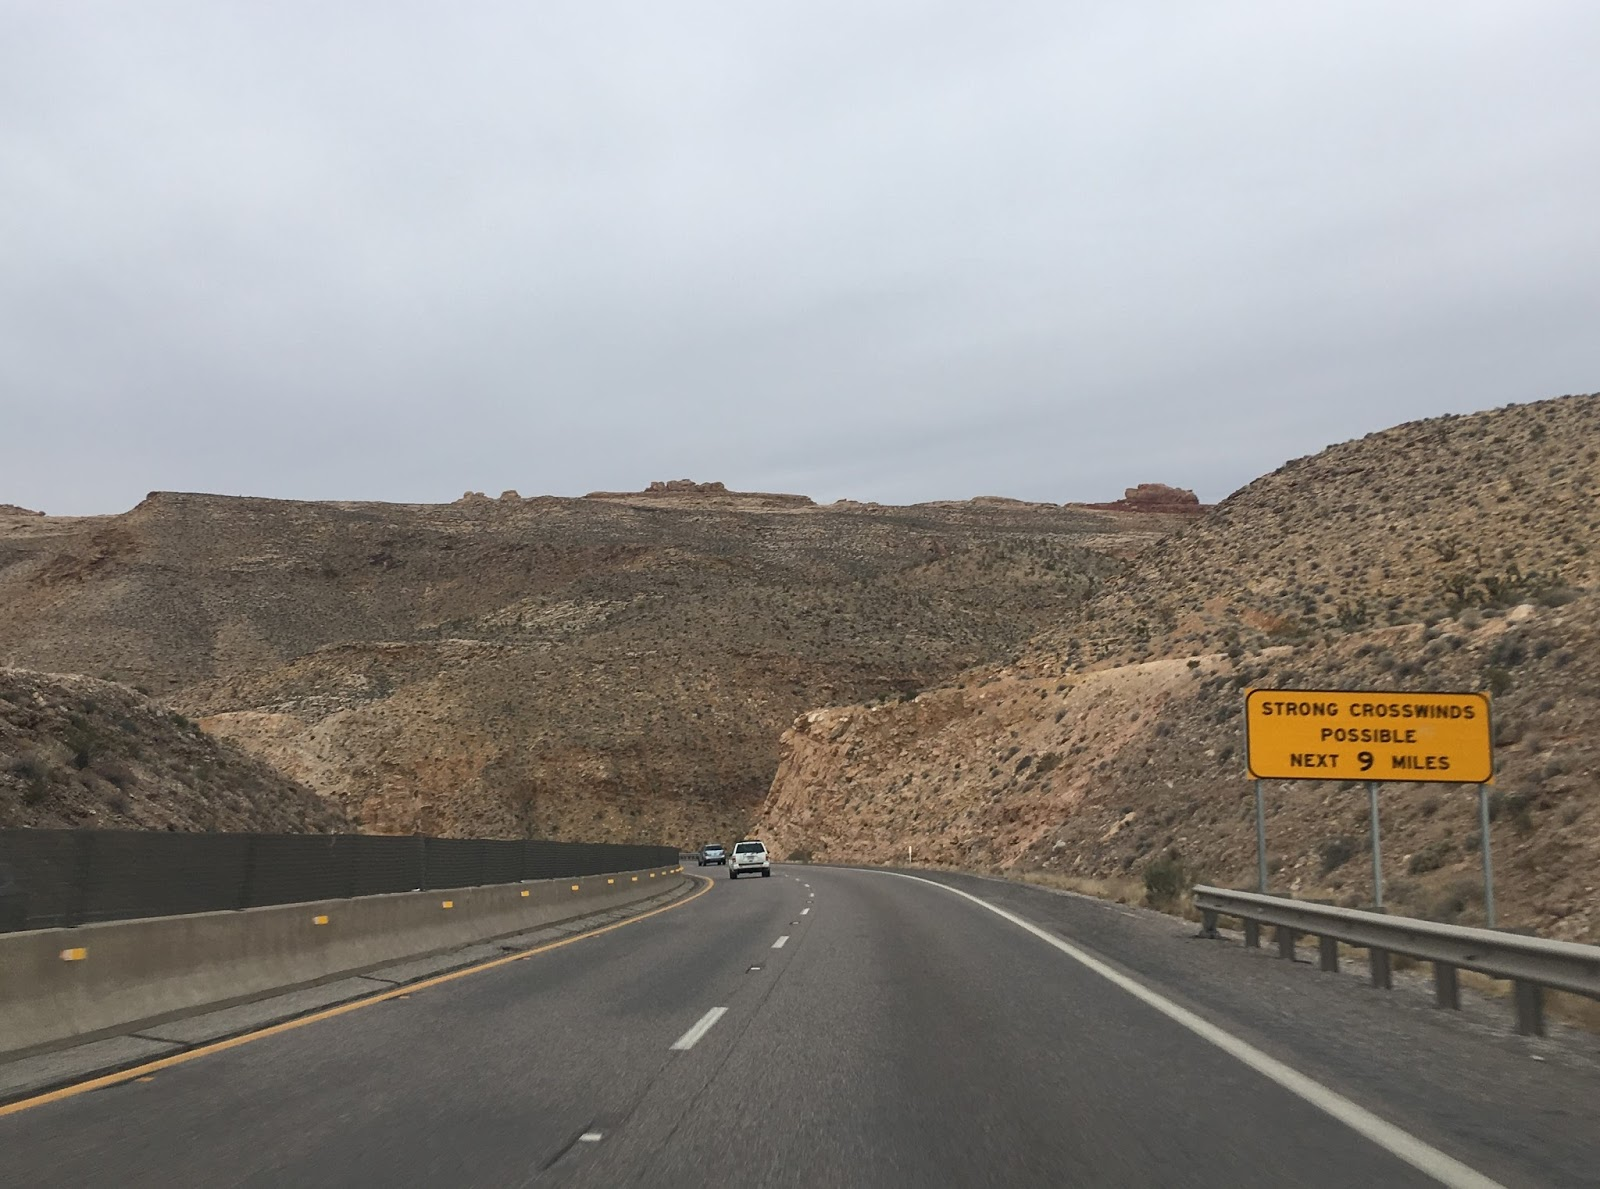 exiting the virgin river gorge the terrain on i 15 flattens back out and 75 mph speeds resume